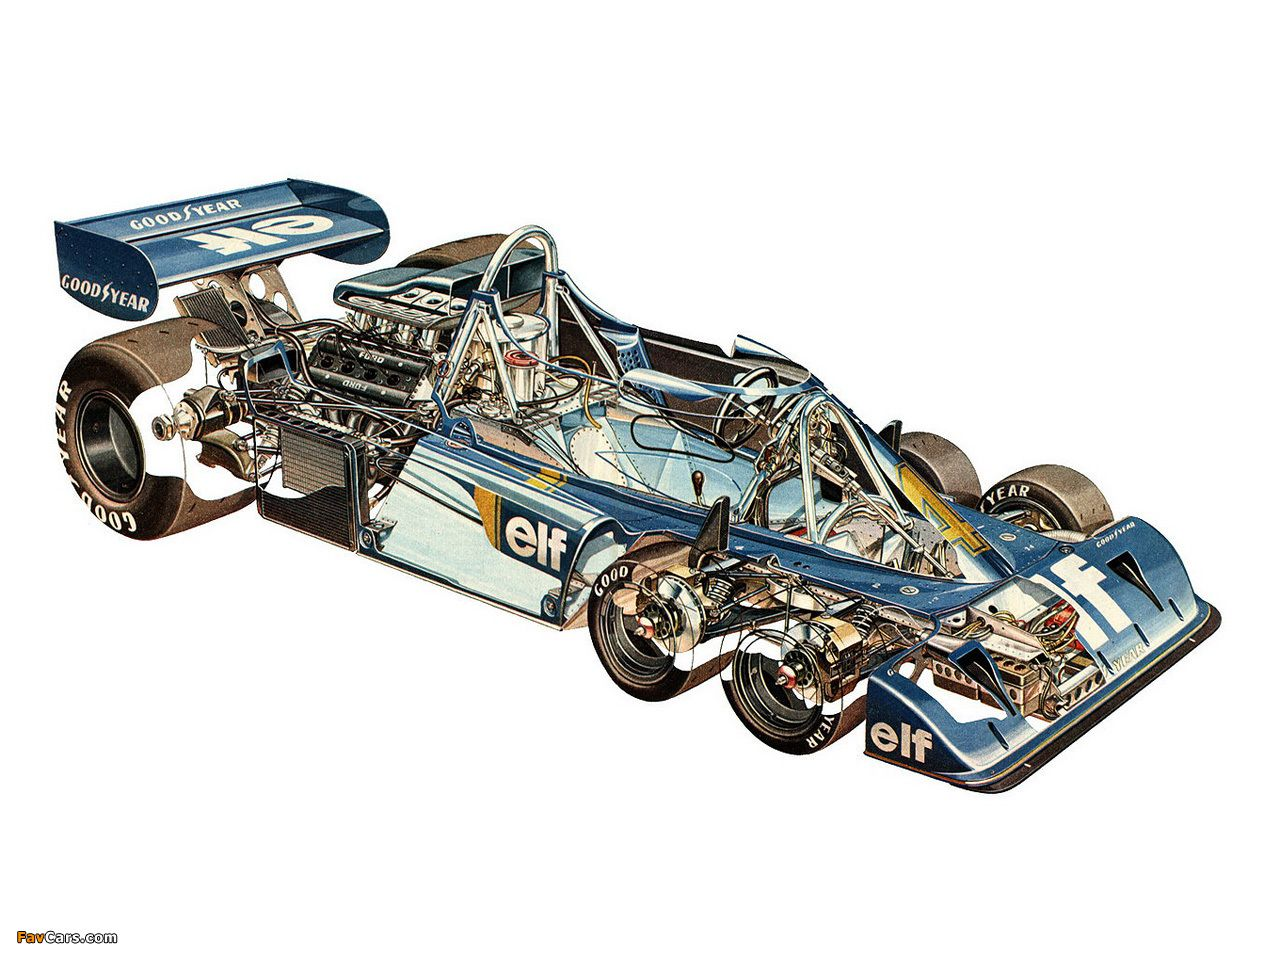 Chassis design of f1 car - F1 Car Cutaway View